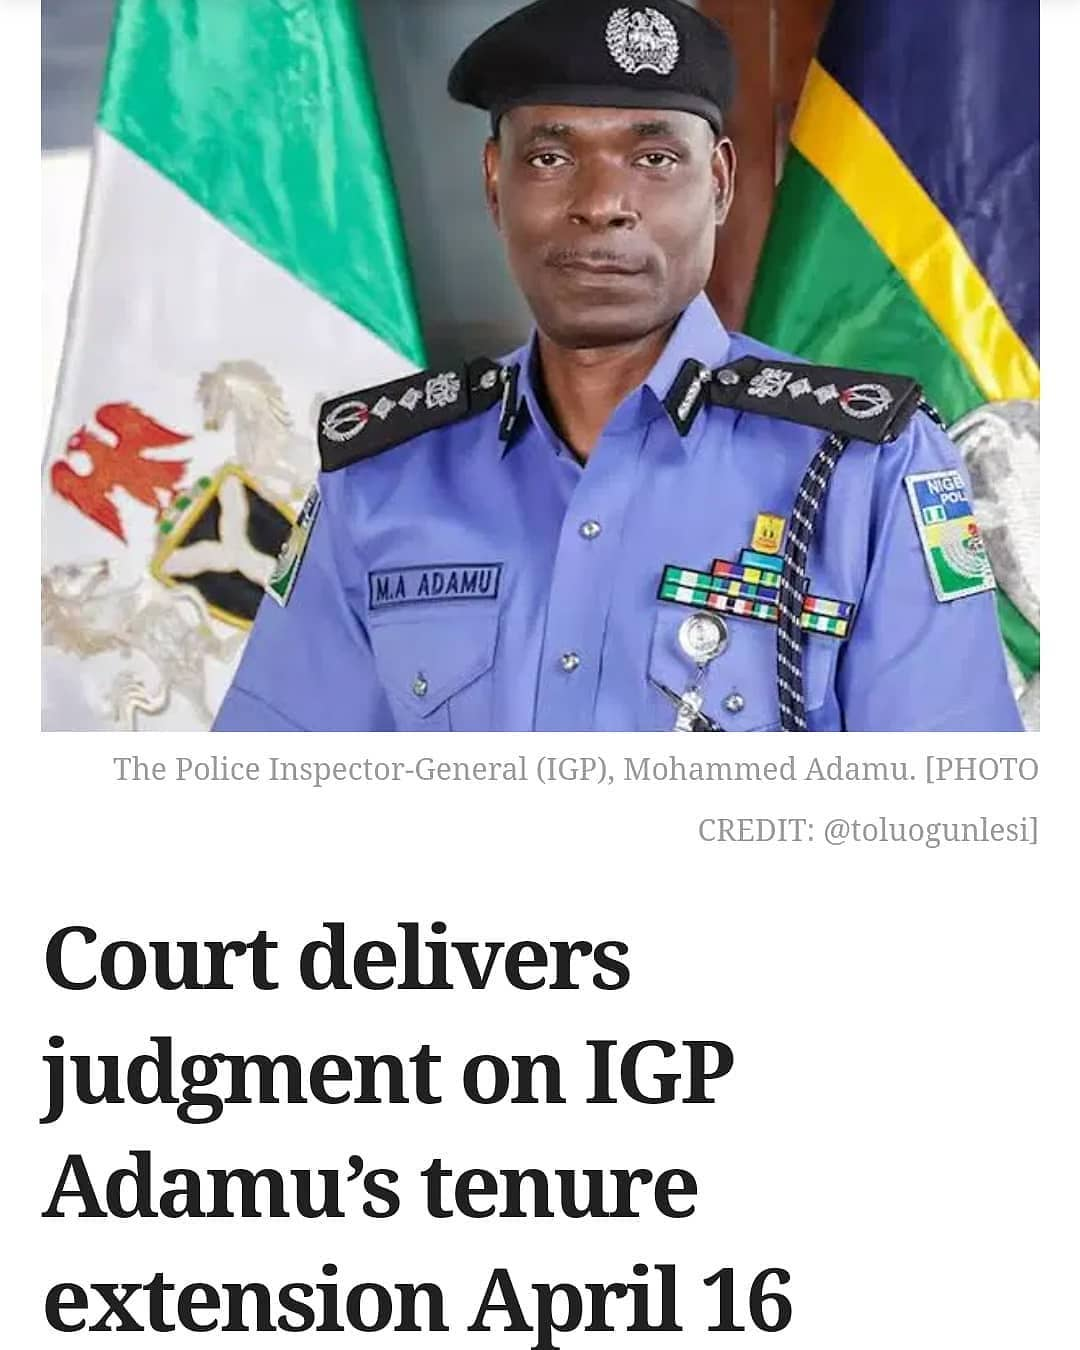 """The Federal High Court, Abuja, on Tuesday fixed April 16 for judgment in the suit seeking the challenging the extension of the tenure of the Inspector-General of Police (IGP), Mohammed Adamu  The judge, Ahmed Mohammed, fixed the date after parties to the case adopted their written addresses.  The plaintiff's lawyer, Ugochukwu Ezekiel, and the counsel for Mr Adamu, Alex Izinyon, a Senior Advocate of Nigeria, informed the court on Tuesday that they were ready for the hearing of the suit having successfully served the 4th defendant with their processes.  Adopting his addresses, the plaintiff's lawyer, Mr Ezekiel, said """"We rely on all the affidavits and exhibits attached and urge the court to grant the reliefs and answer the questions in favour of the plaintiff.""""  Similarly, Mr Izinyon urged the court to uphold the preliminary objection of his client in response to the plaintiff's written address and dismiss the suit.  PREMIUM TIMESreportedhow Mr Adamu, President Muhammadu Buhari and the Attorney-General of the Federation (AGF), through their lawyers, argued that the IGP couldremainin office till either 2023 or 2024.  A lawyer, Maxwell Okpara, filed the suit following the decision of PresidentMuhammadu Buharito extend the tenure of Mr Adamu as Inspector-General of Police by three months after his retirement on February 1.  Mr Okpara's contention was that by virtue of Section 215 of the 1999 Constitution and Section 7 of the Nigeria Police Act, 2020, Mr Adamu could not continue to function as the IGP, having retired as a serving member of the force.  Mr Opara sought among others in his suit, an order directing Mr Adamu to stop functioning as the IGP."""